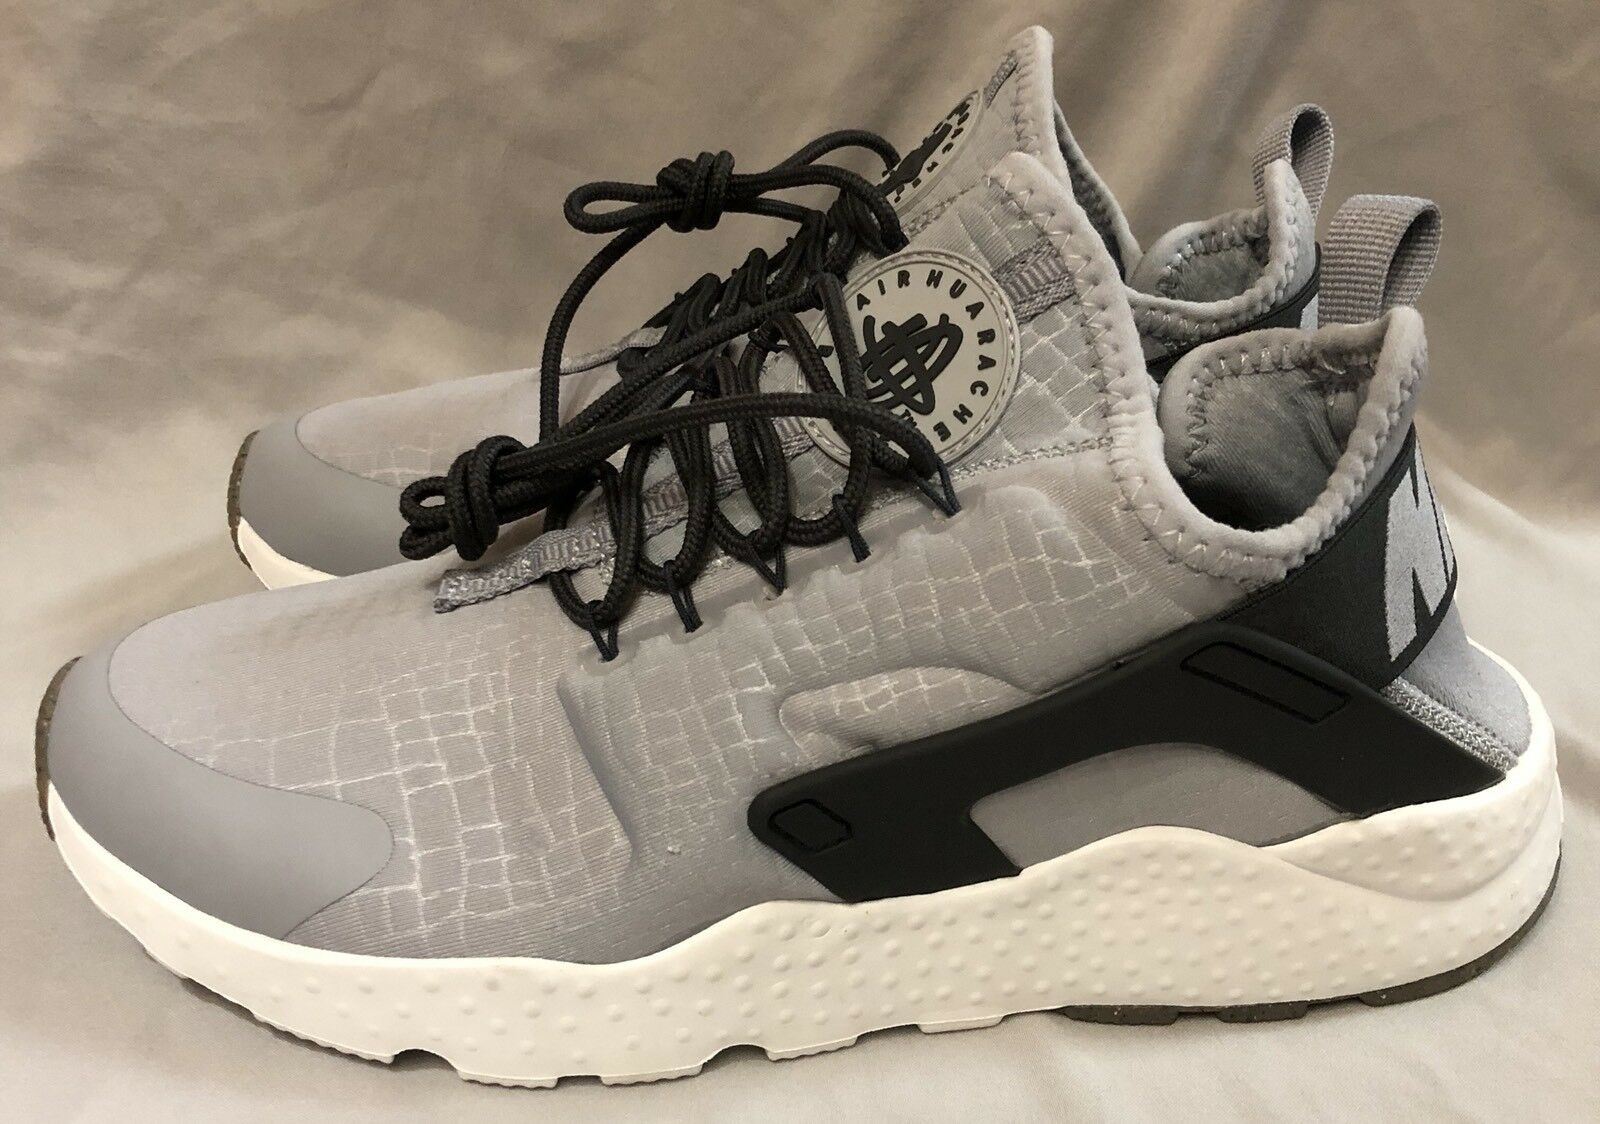 Nike Air Huarache Run Ultra Womens Shoes Comfortable Comfortable and good-looking